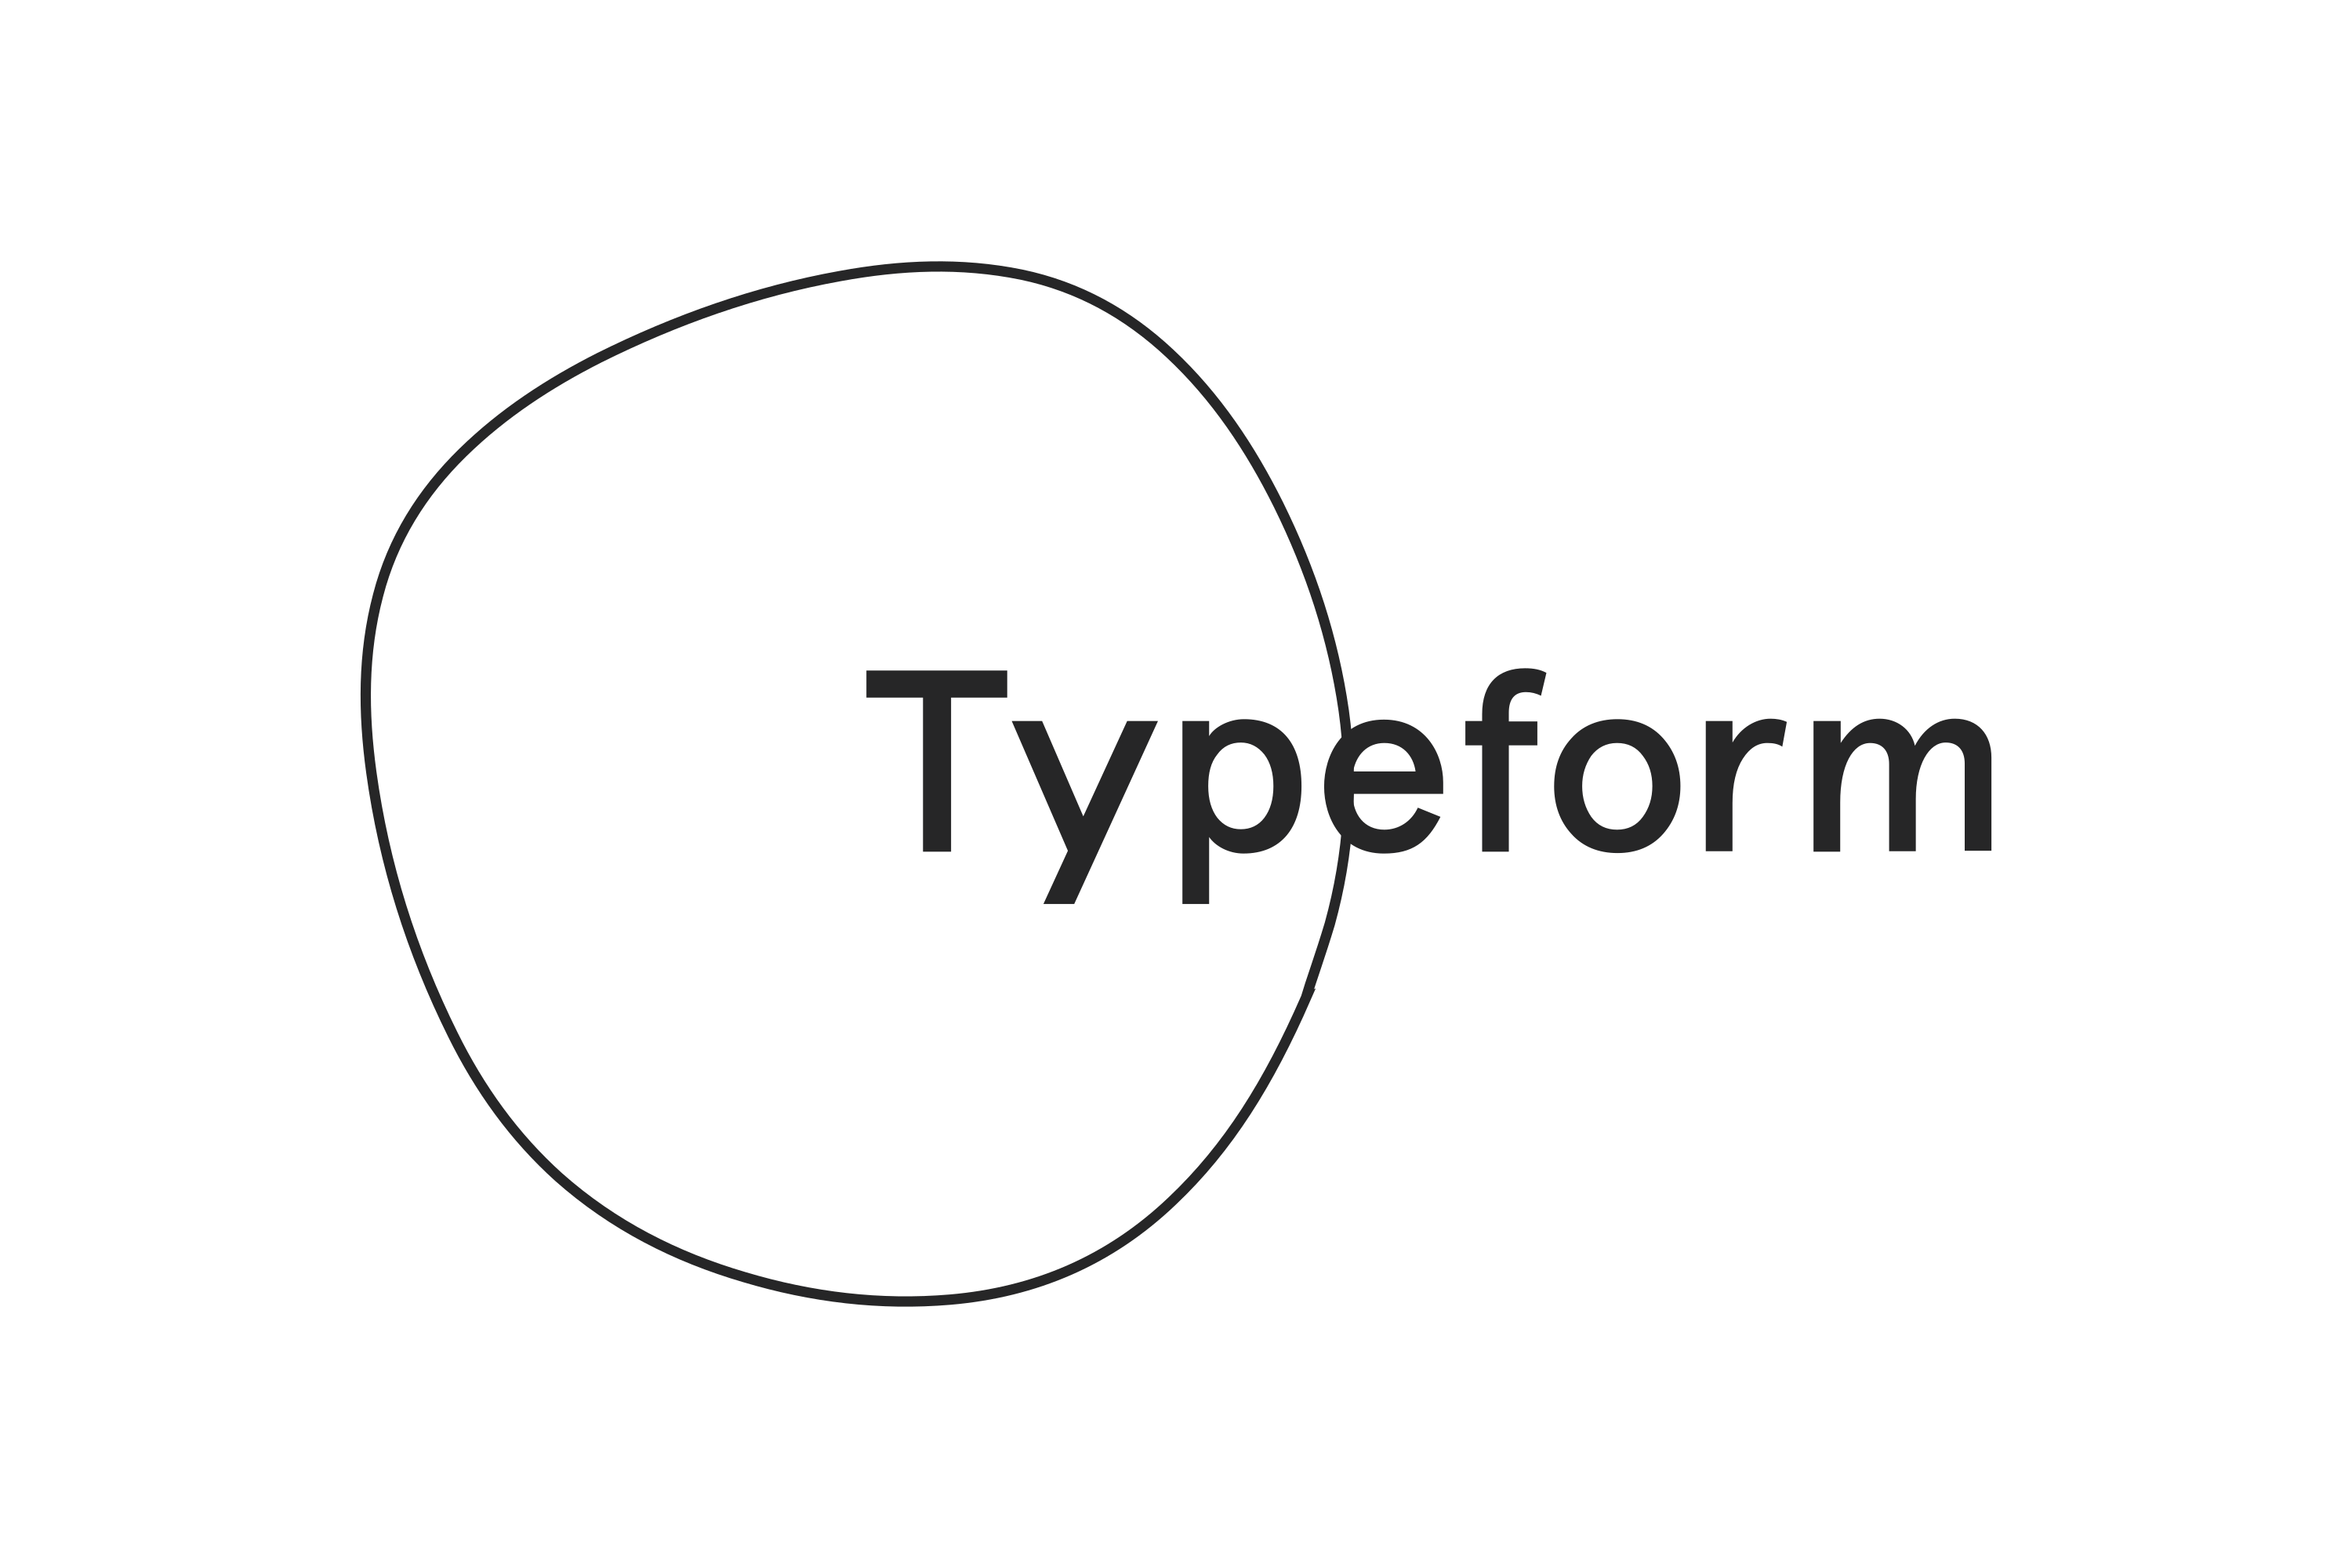 Integraciones de Helppier - Typeform